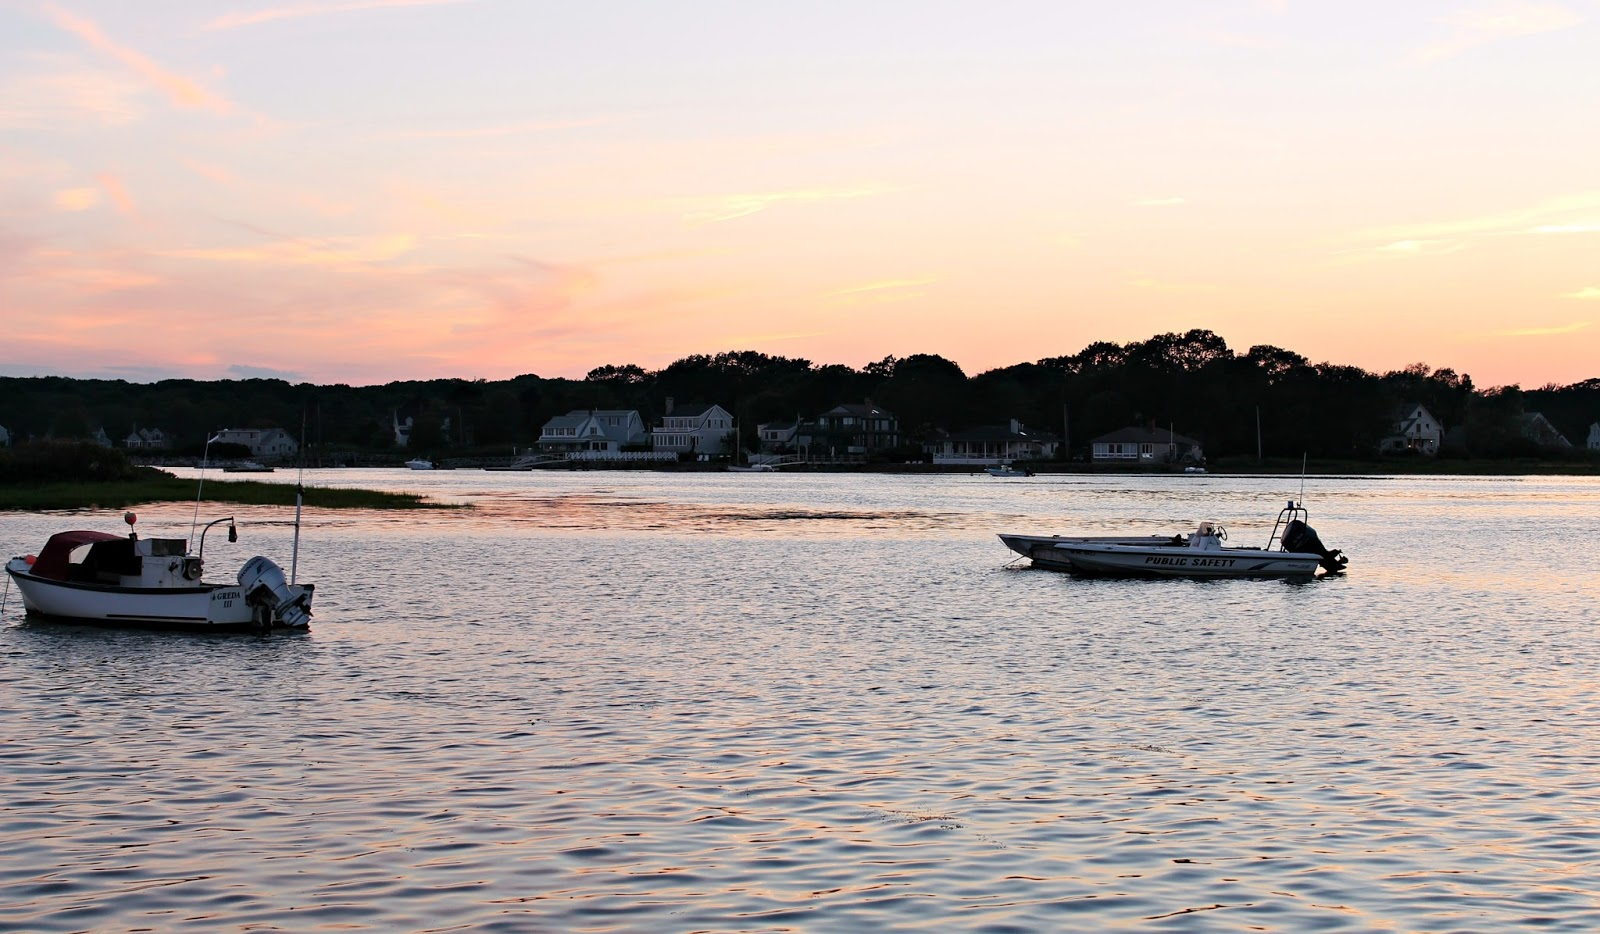 Fishermen heading out at dusk, Cape Porpoise